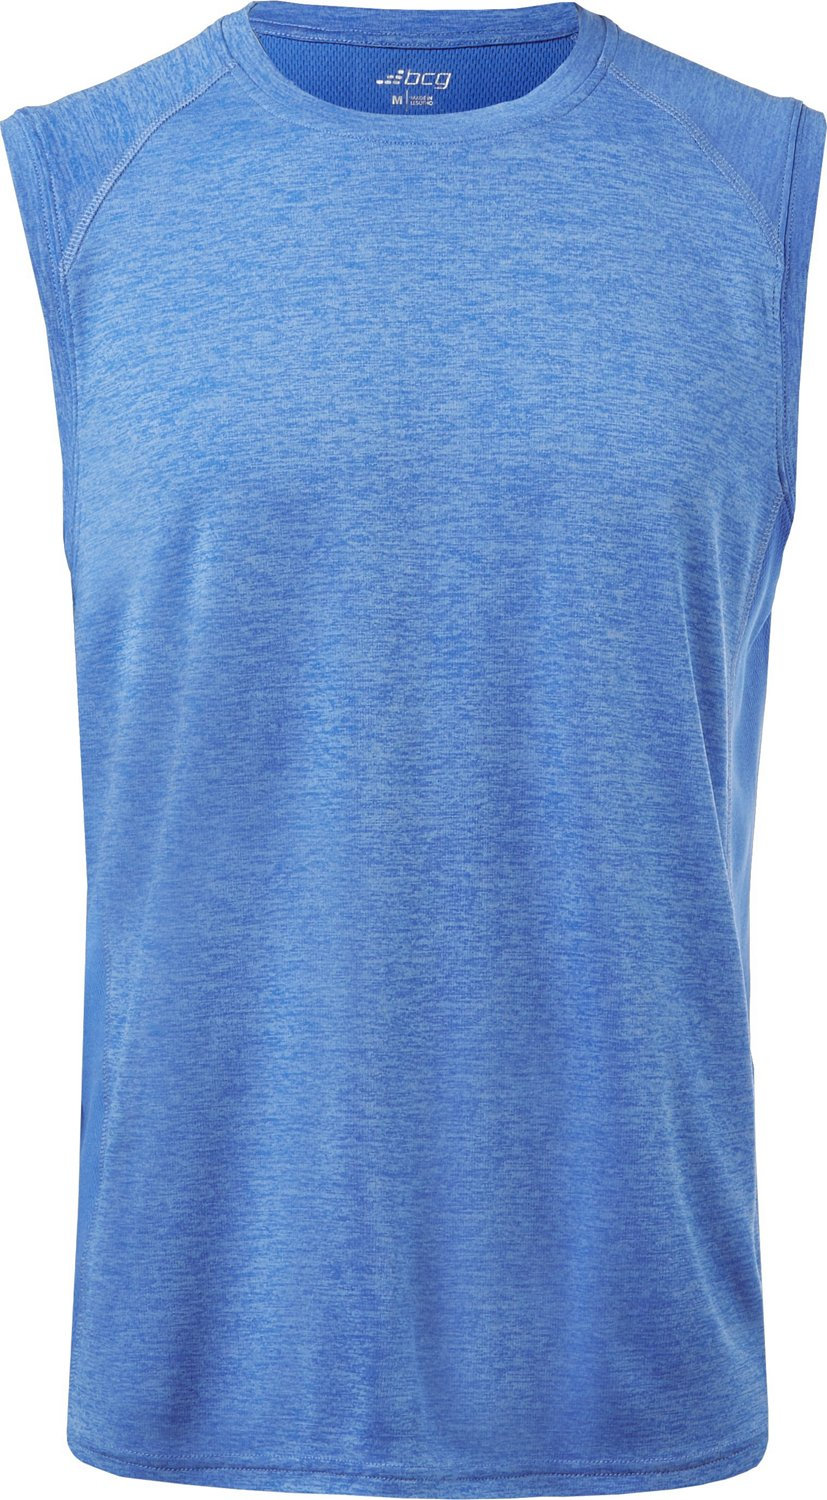 56f83f4301 Display product reviews for BCG Men s Turbo Muscle Mesh Tank Top